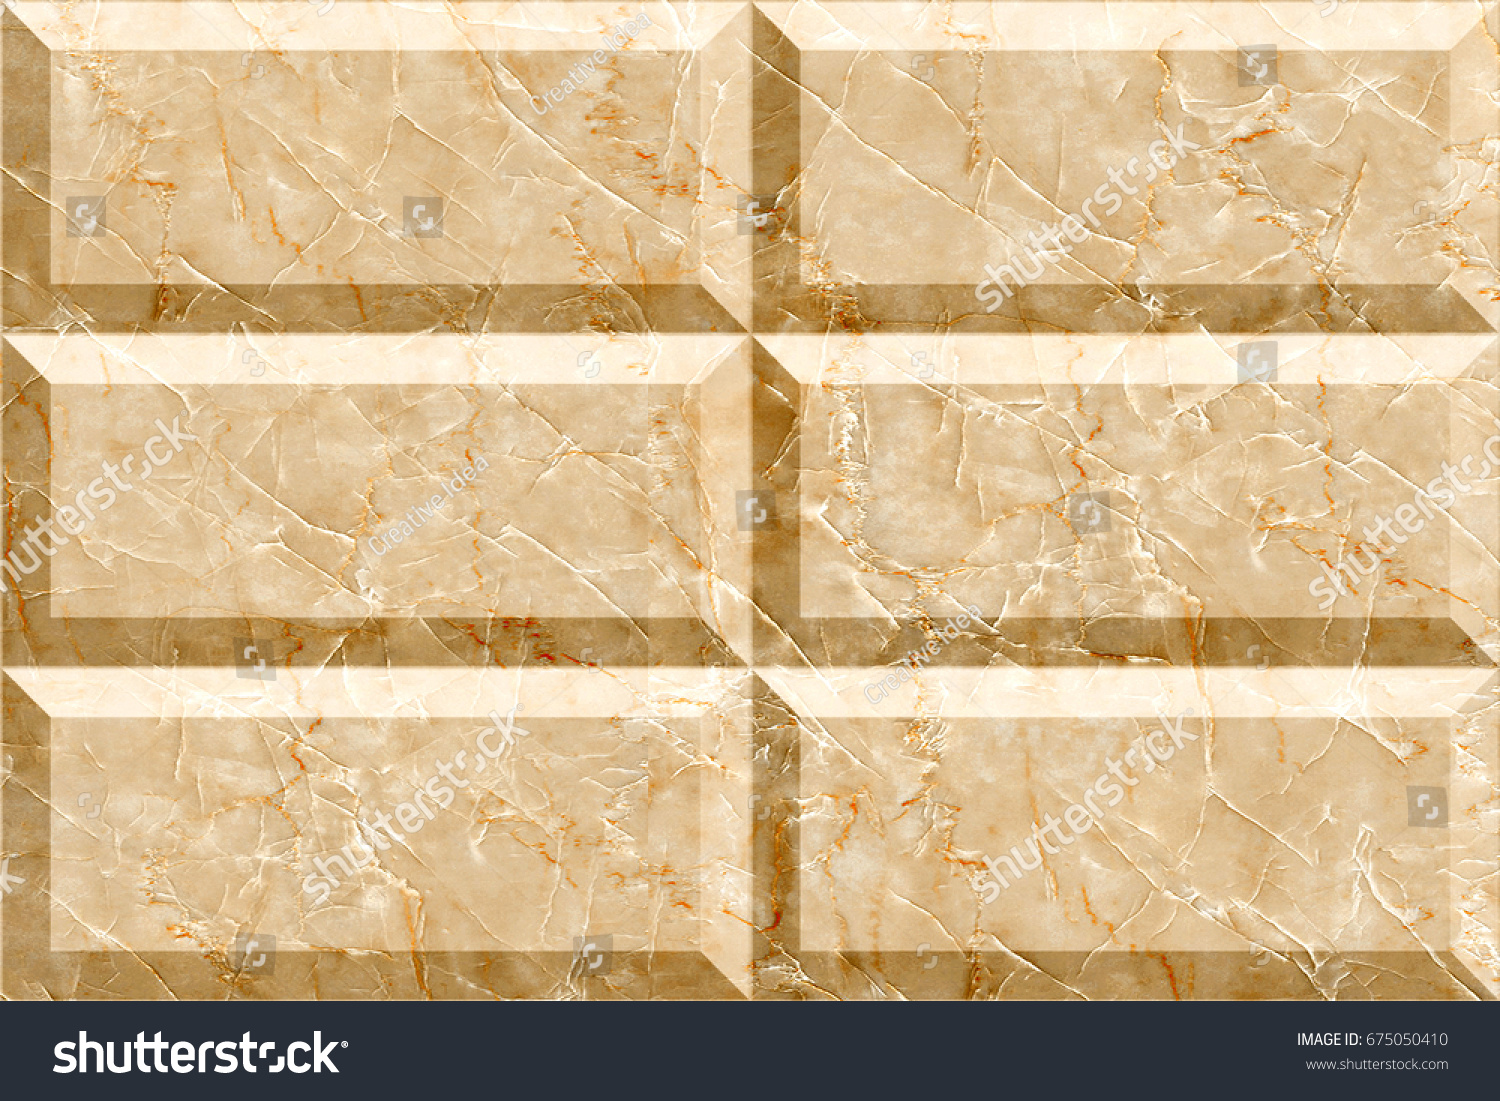 Background of stone wall made with blocks | EZ Canvas